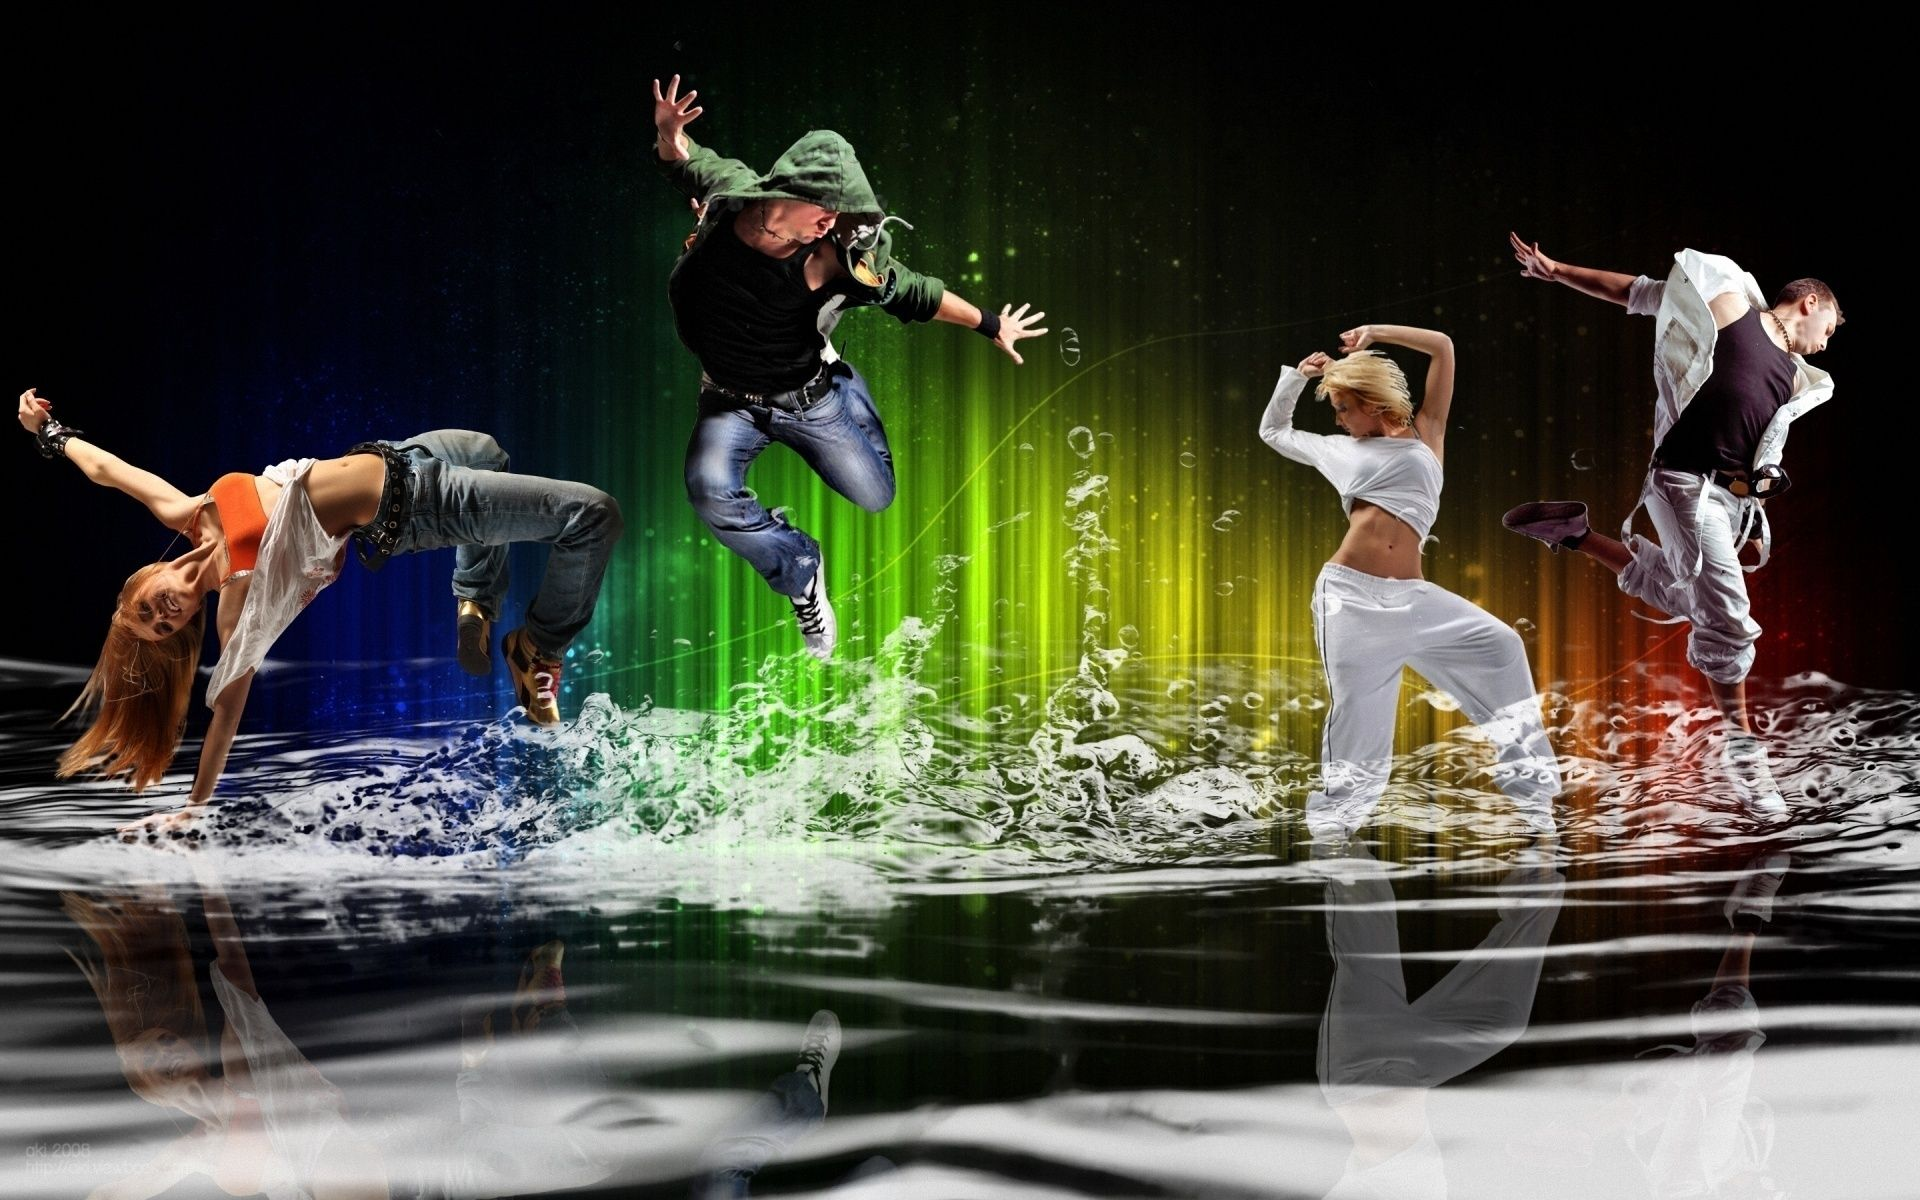 Dance music is music composed specifically to facilitate or dance wallpapers dance desktop wallpapers 1437 and wallpapers voltagebd Image collections